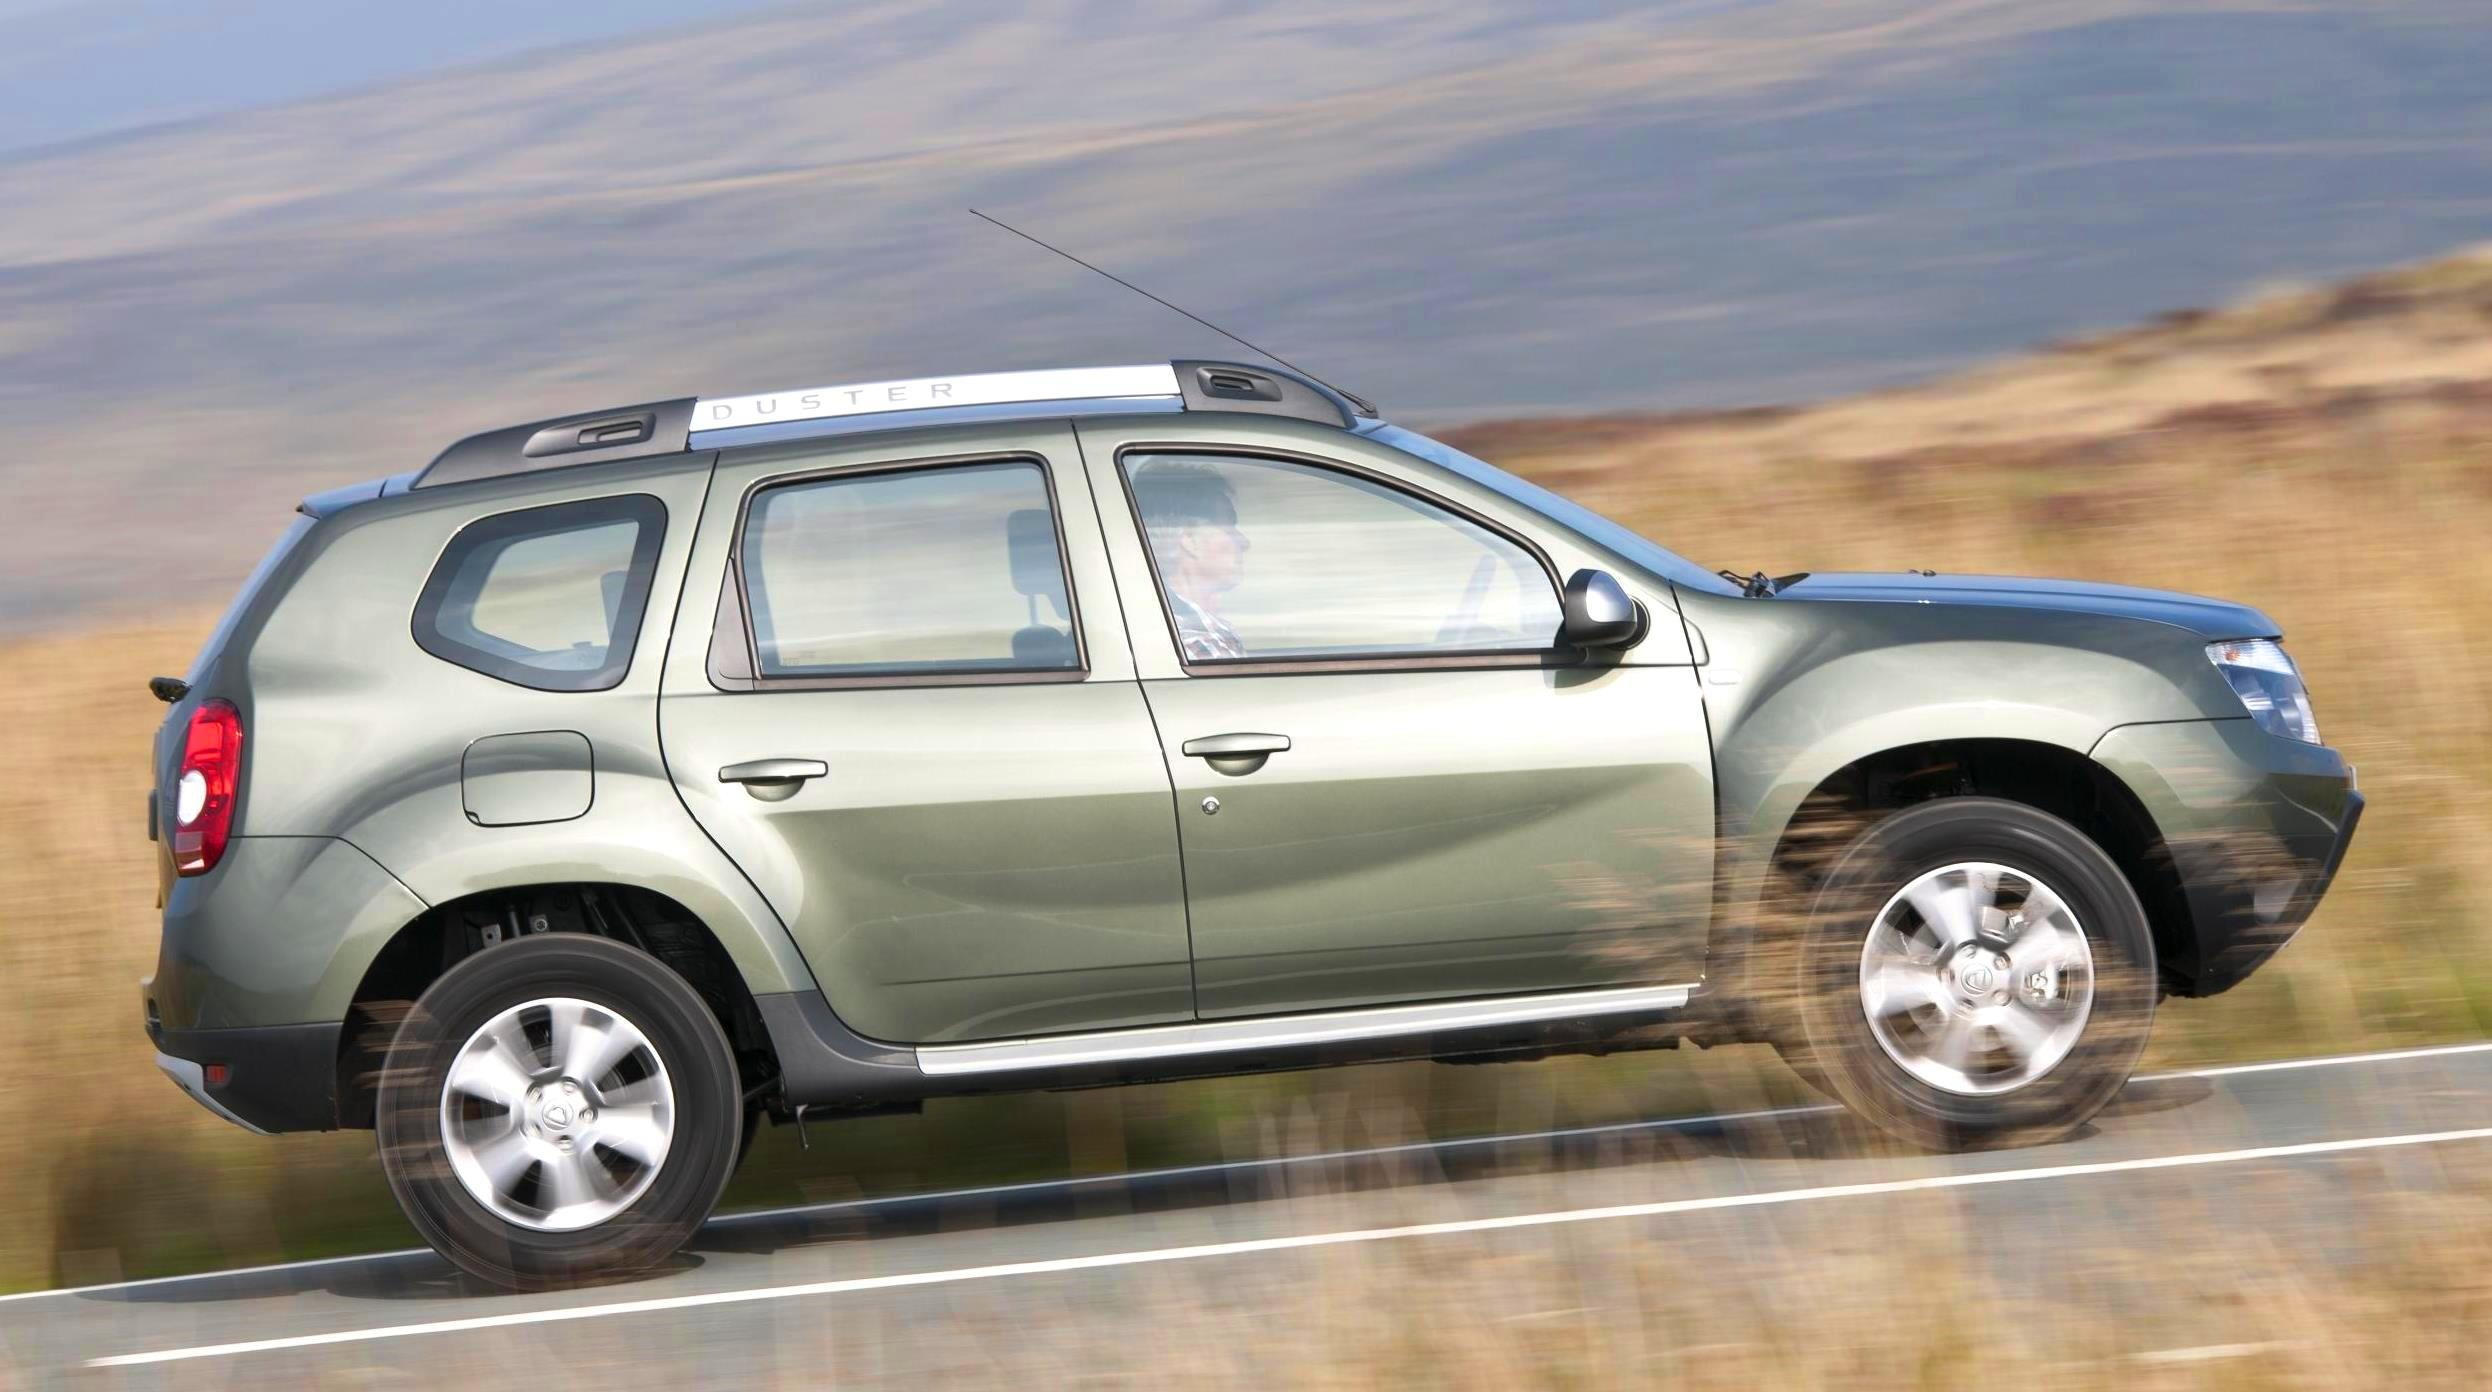 Home Gt Dacia Gt Dacia Duster Competition Car Pictures Pictures to pin